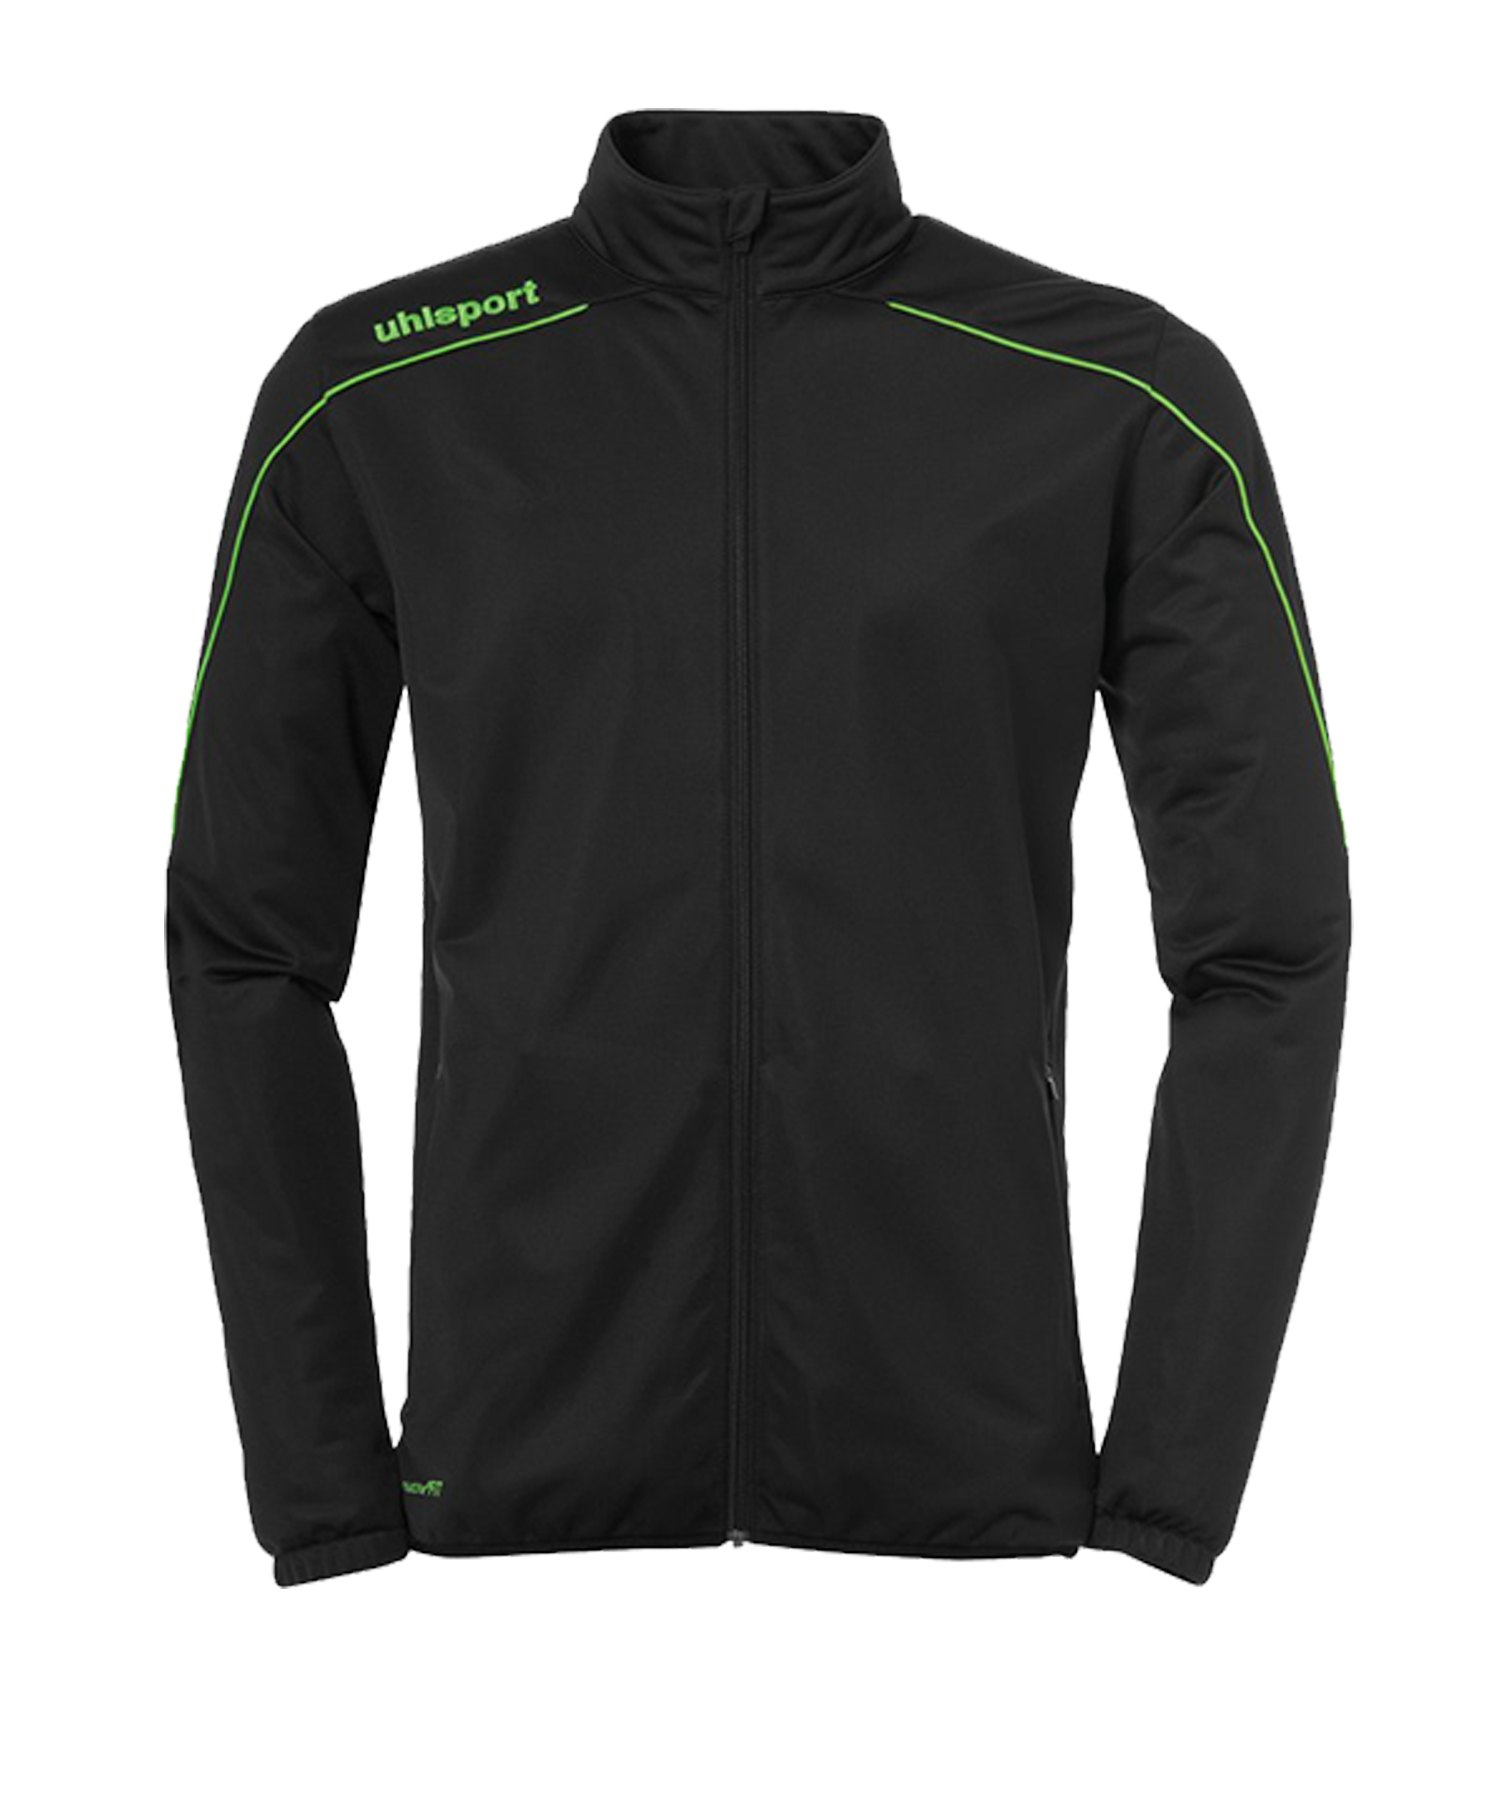 Uhlsport Stream 22 Trainingsjacke Classic F24 - Schwarz